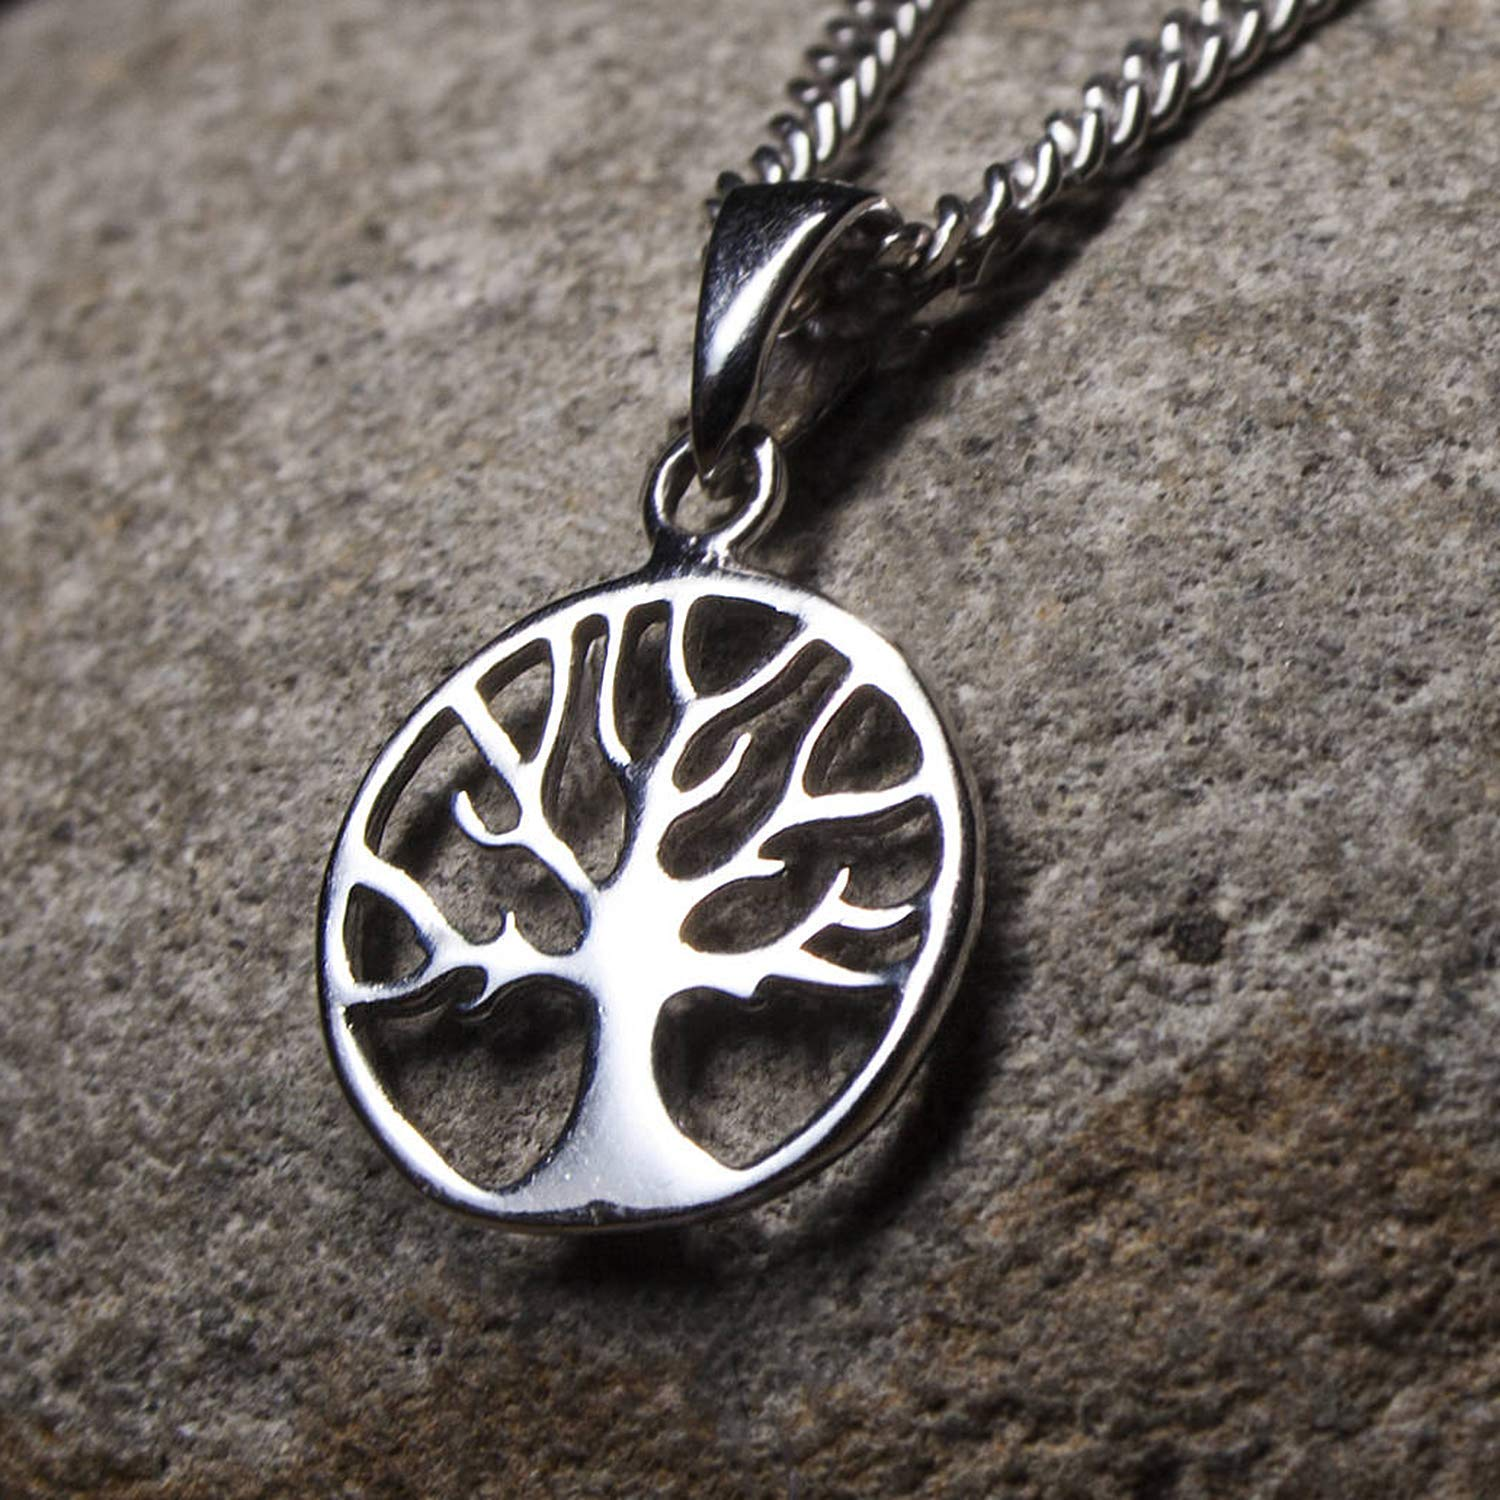 Yggdrasil Sterling Silver Viking Celtic Family Tree of Life Choker Necklace Norse Jewelry for Women